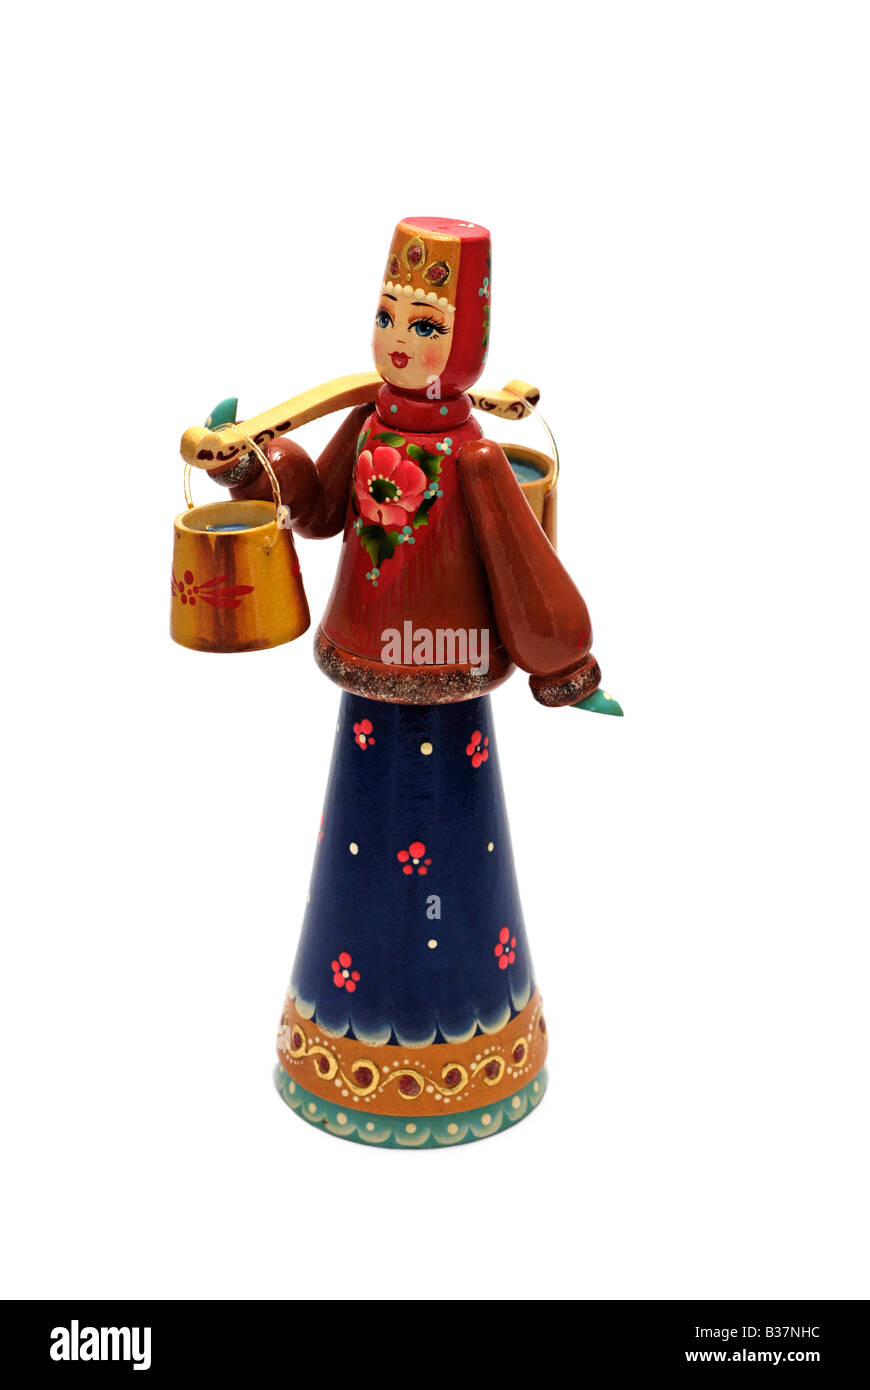 Russian Wood Curved Hand Painted Doll - Stock Image